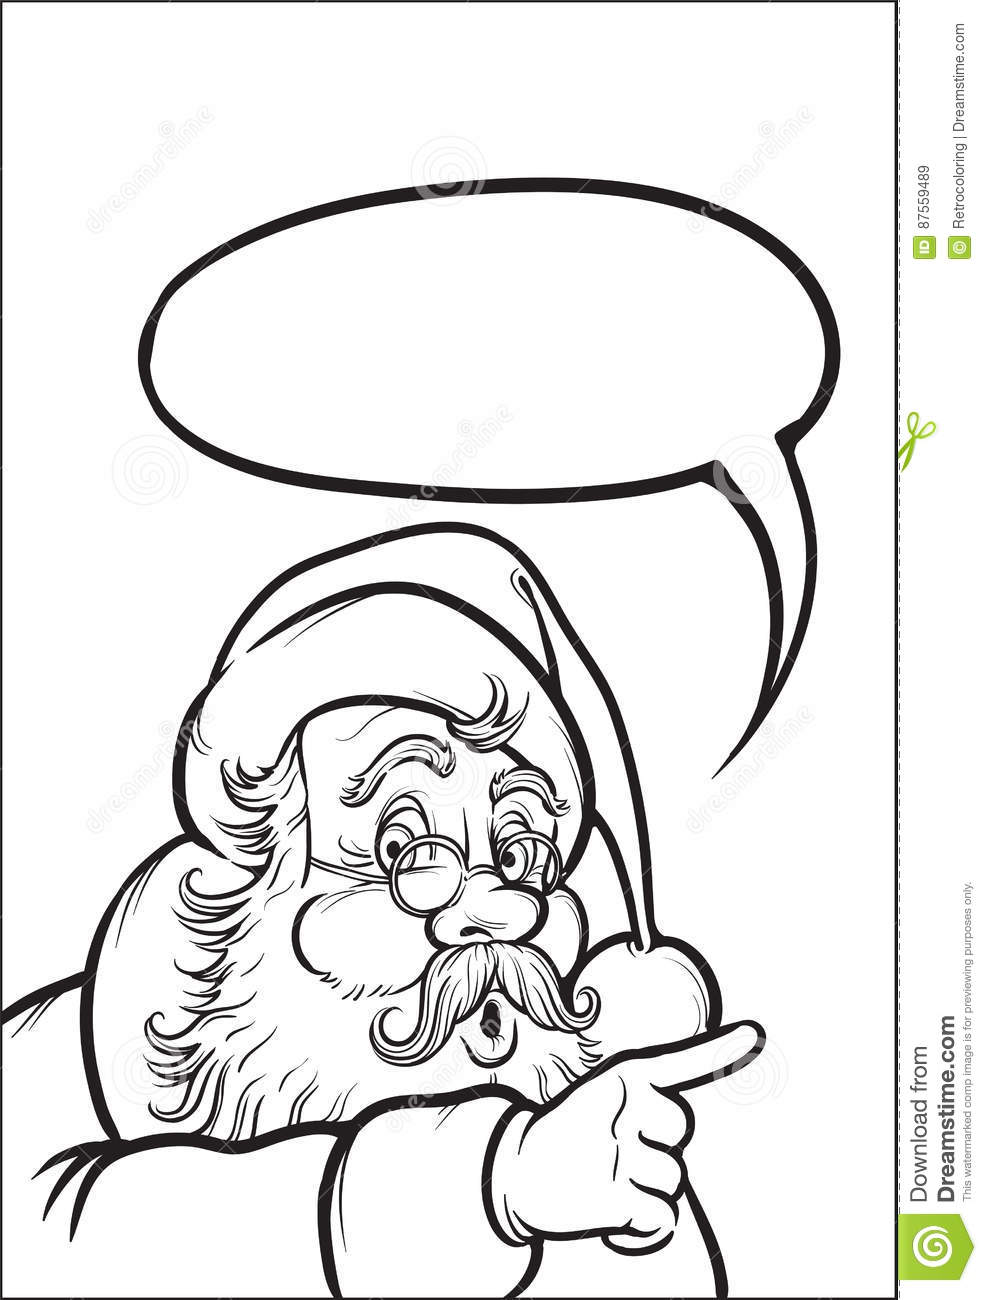 Coloring Book Of Santa Claus Pointing Stock Vector - Illustration of ...